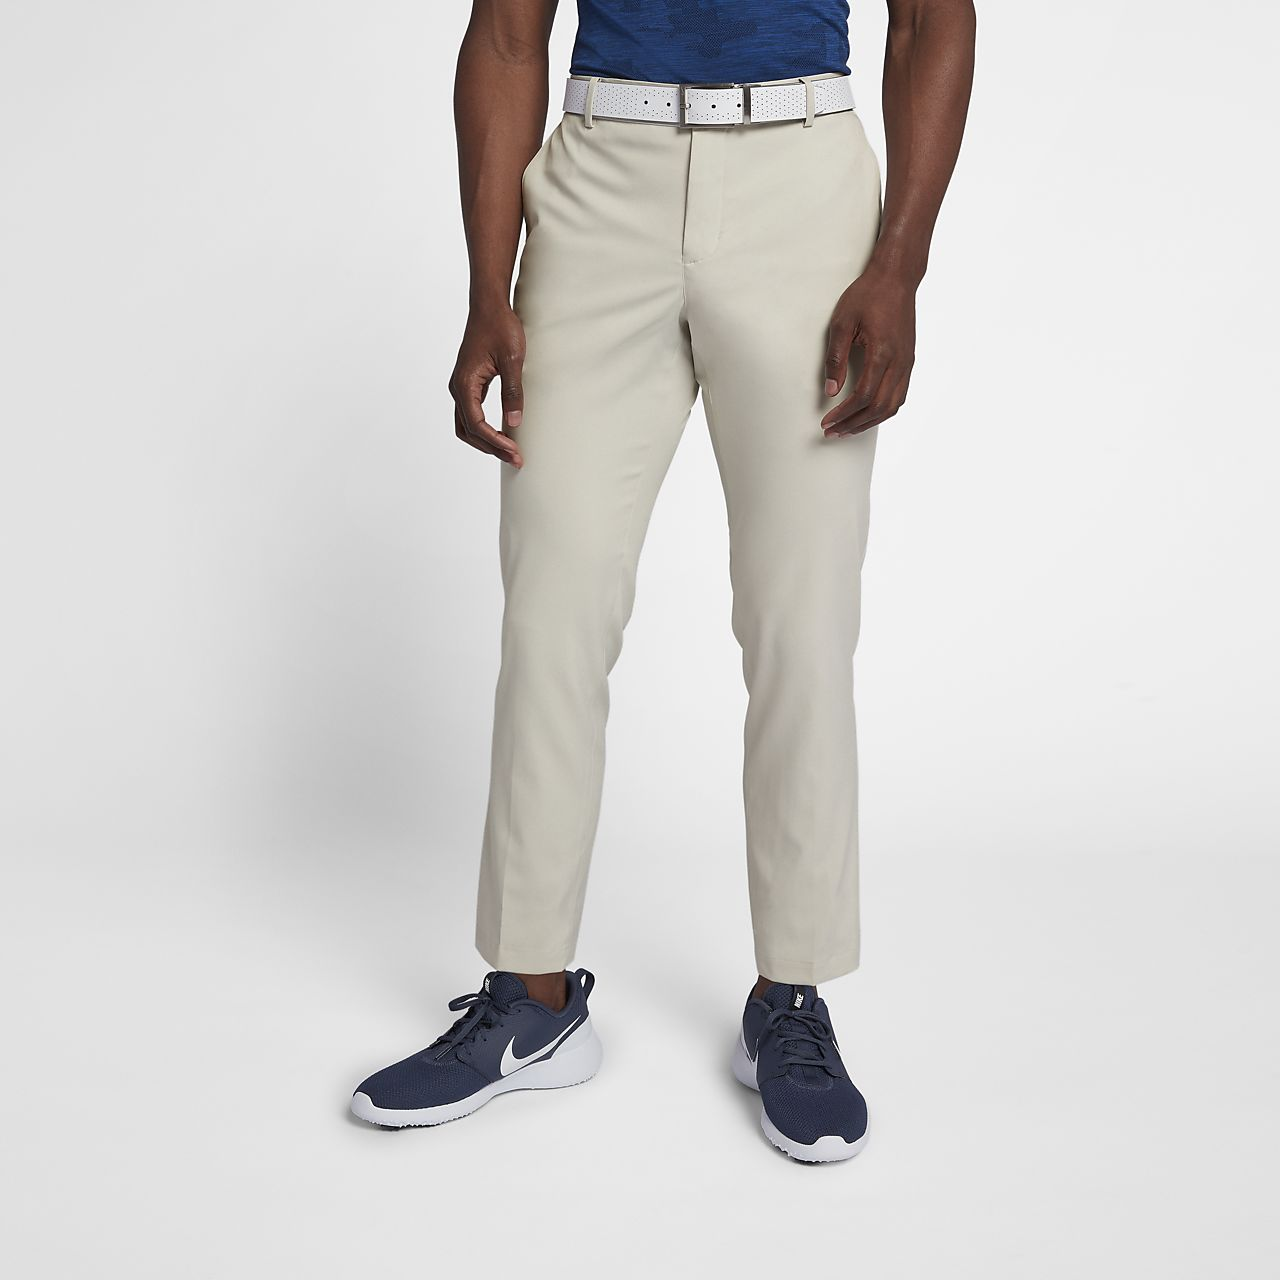 Nike Flex Mens Golf Trousers Gb Tendencies Navy Chinos Short 32